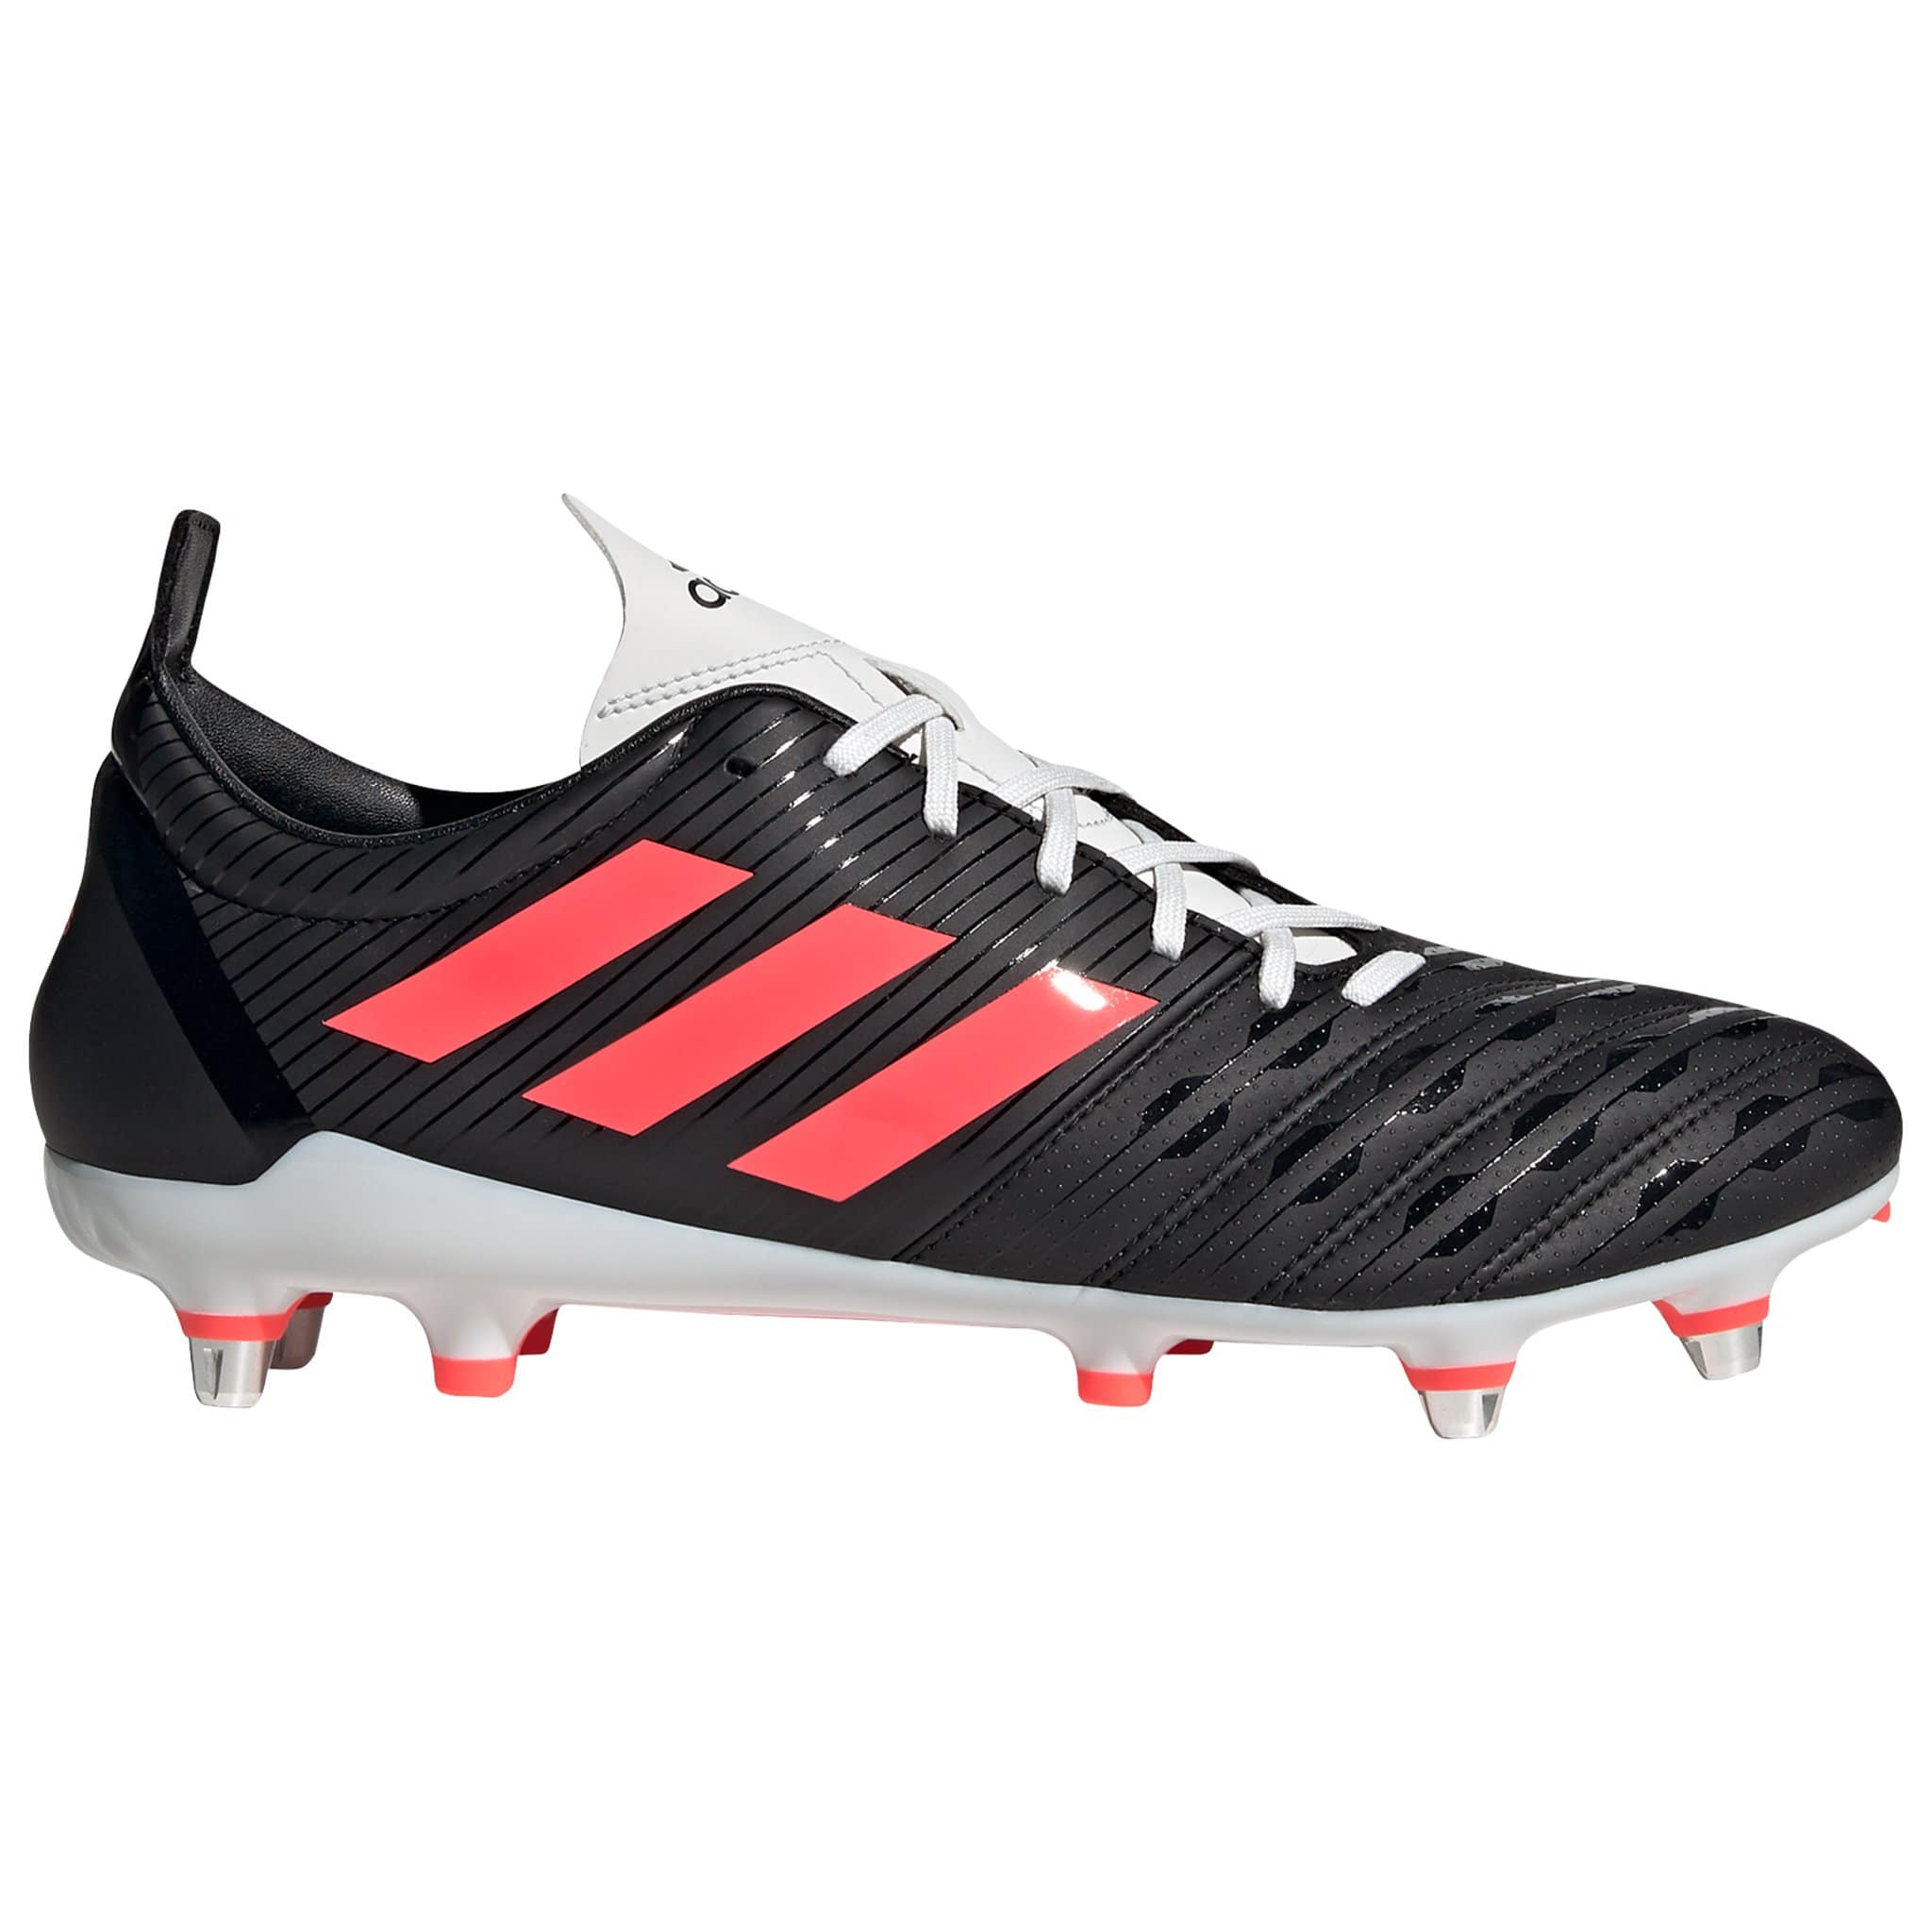 Side View Black Rugby Boot With Pink Stripes